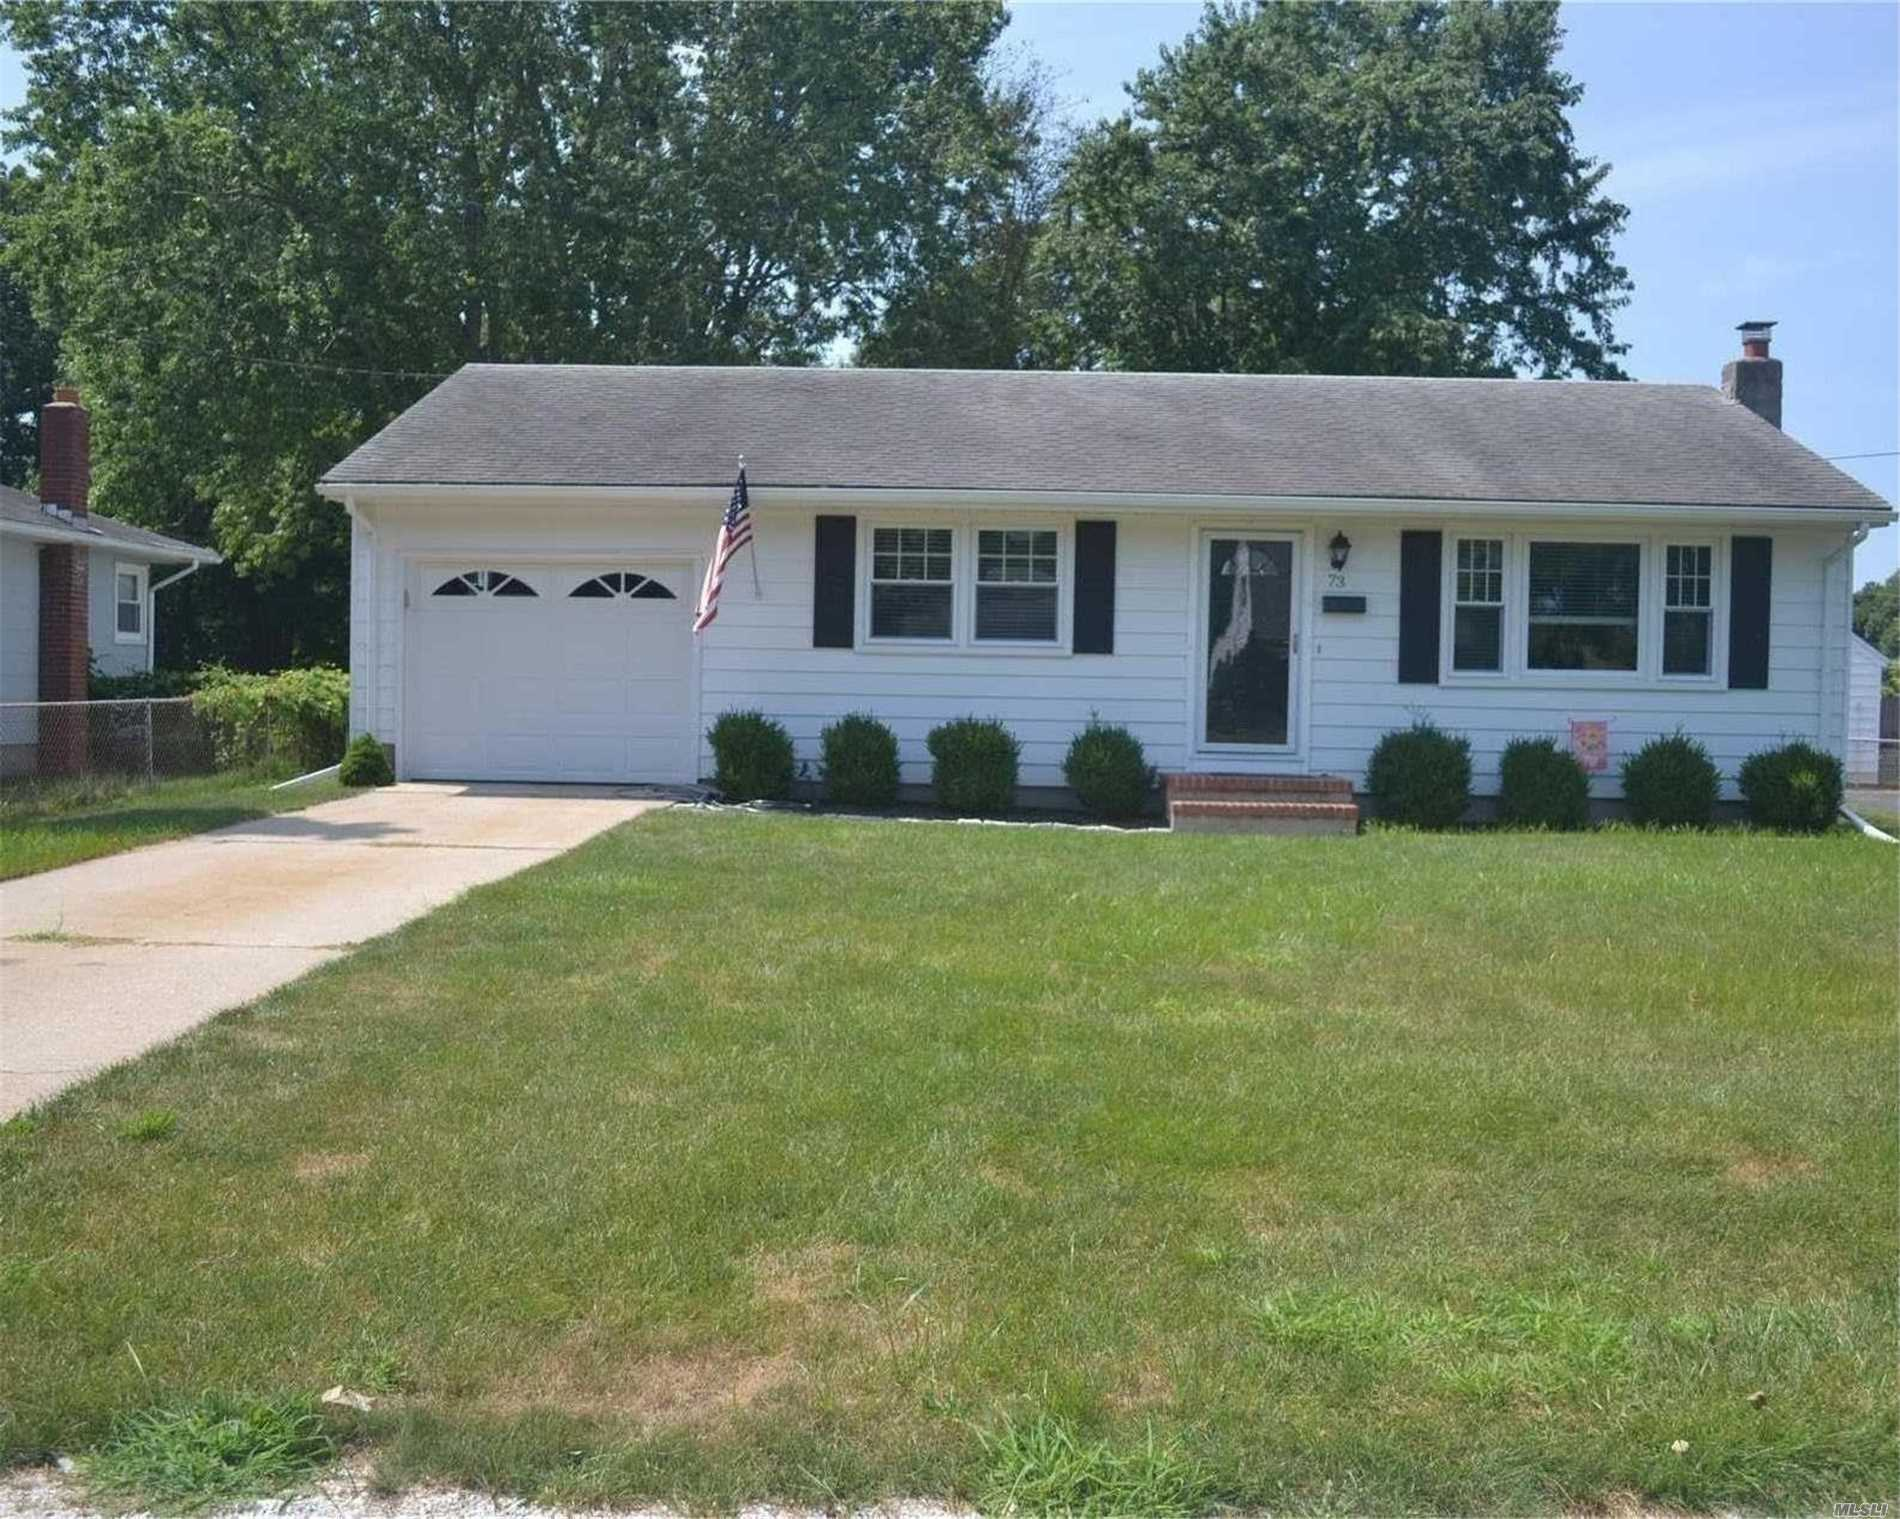 Photo of home for sale at 73 Fairway Ave, Riverhead NY